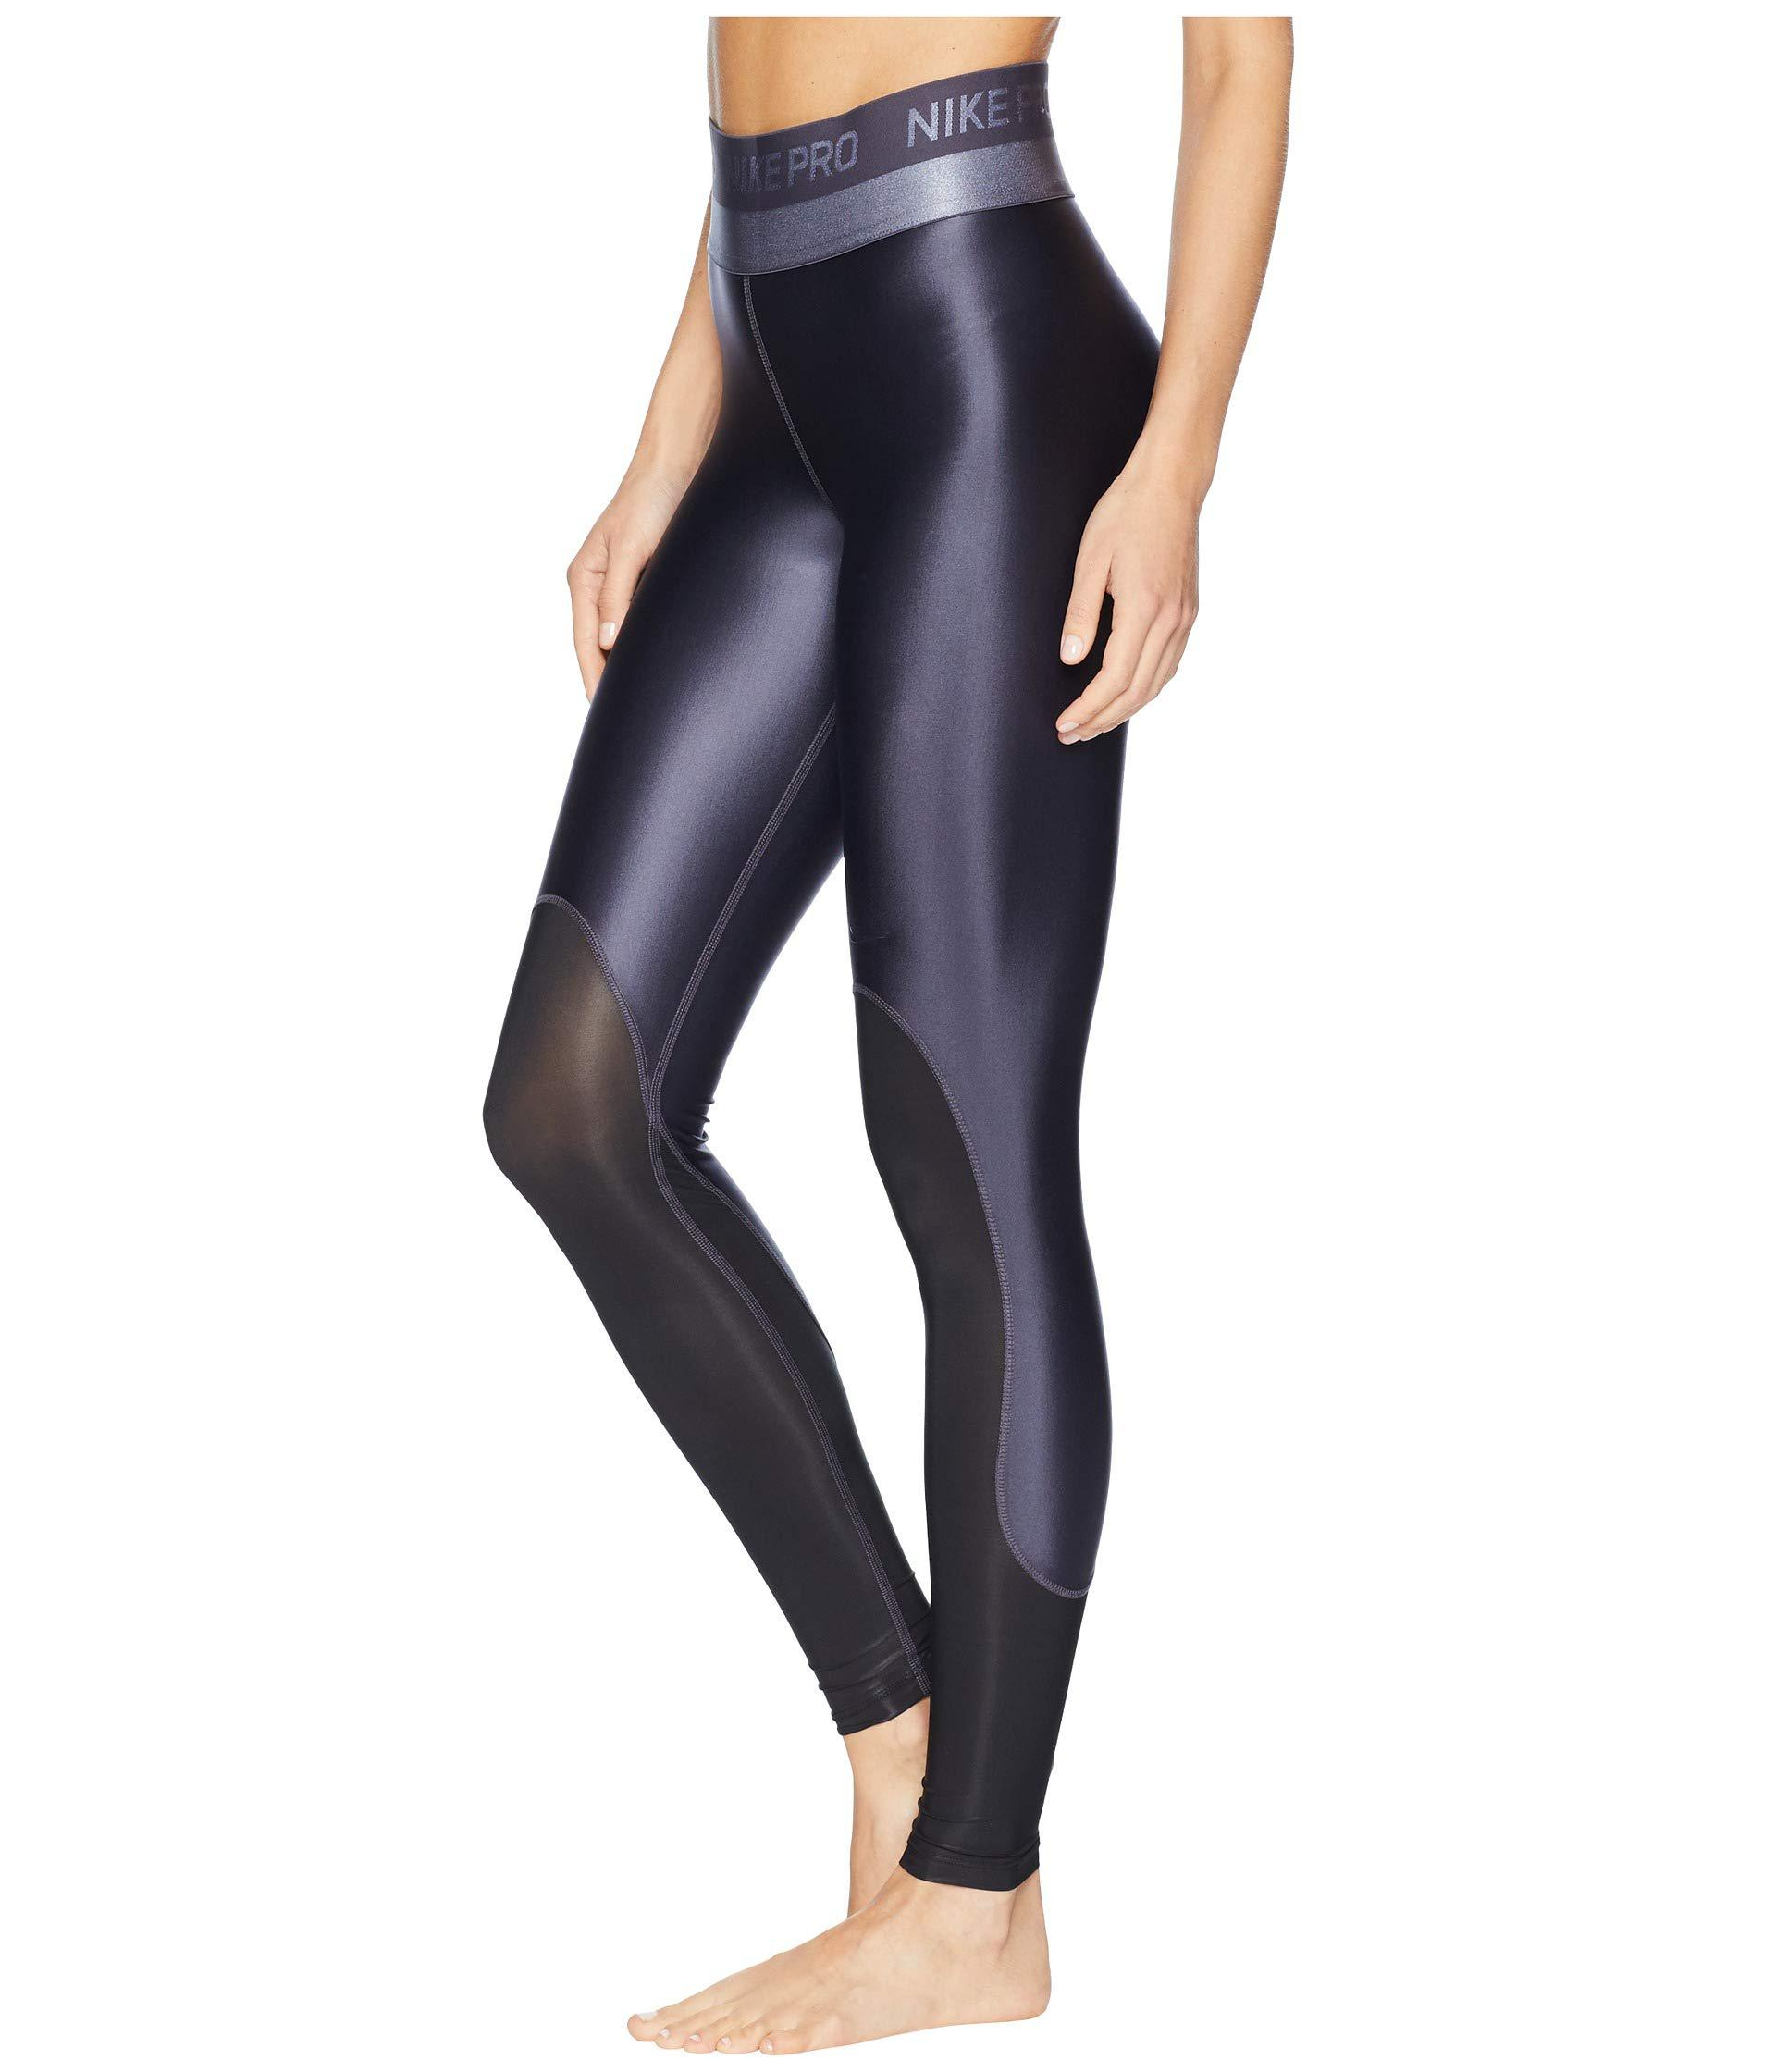 on sale 52967 3a453 Nike Pro Hypercool Glamour Tights in Black - Lyst